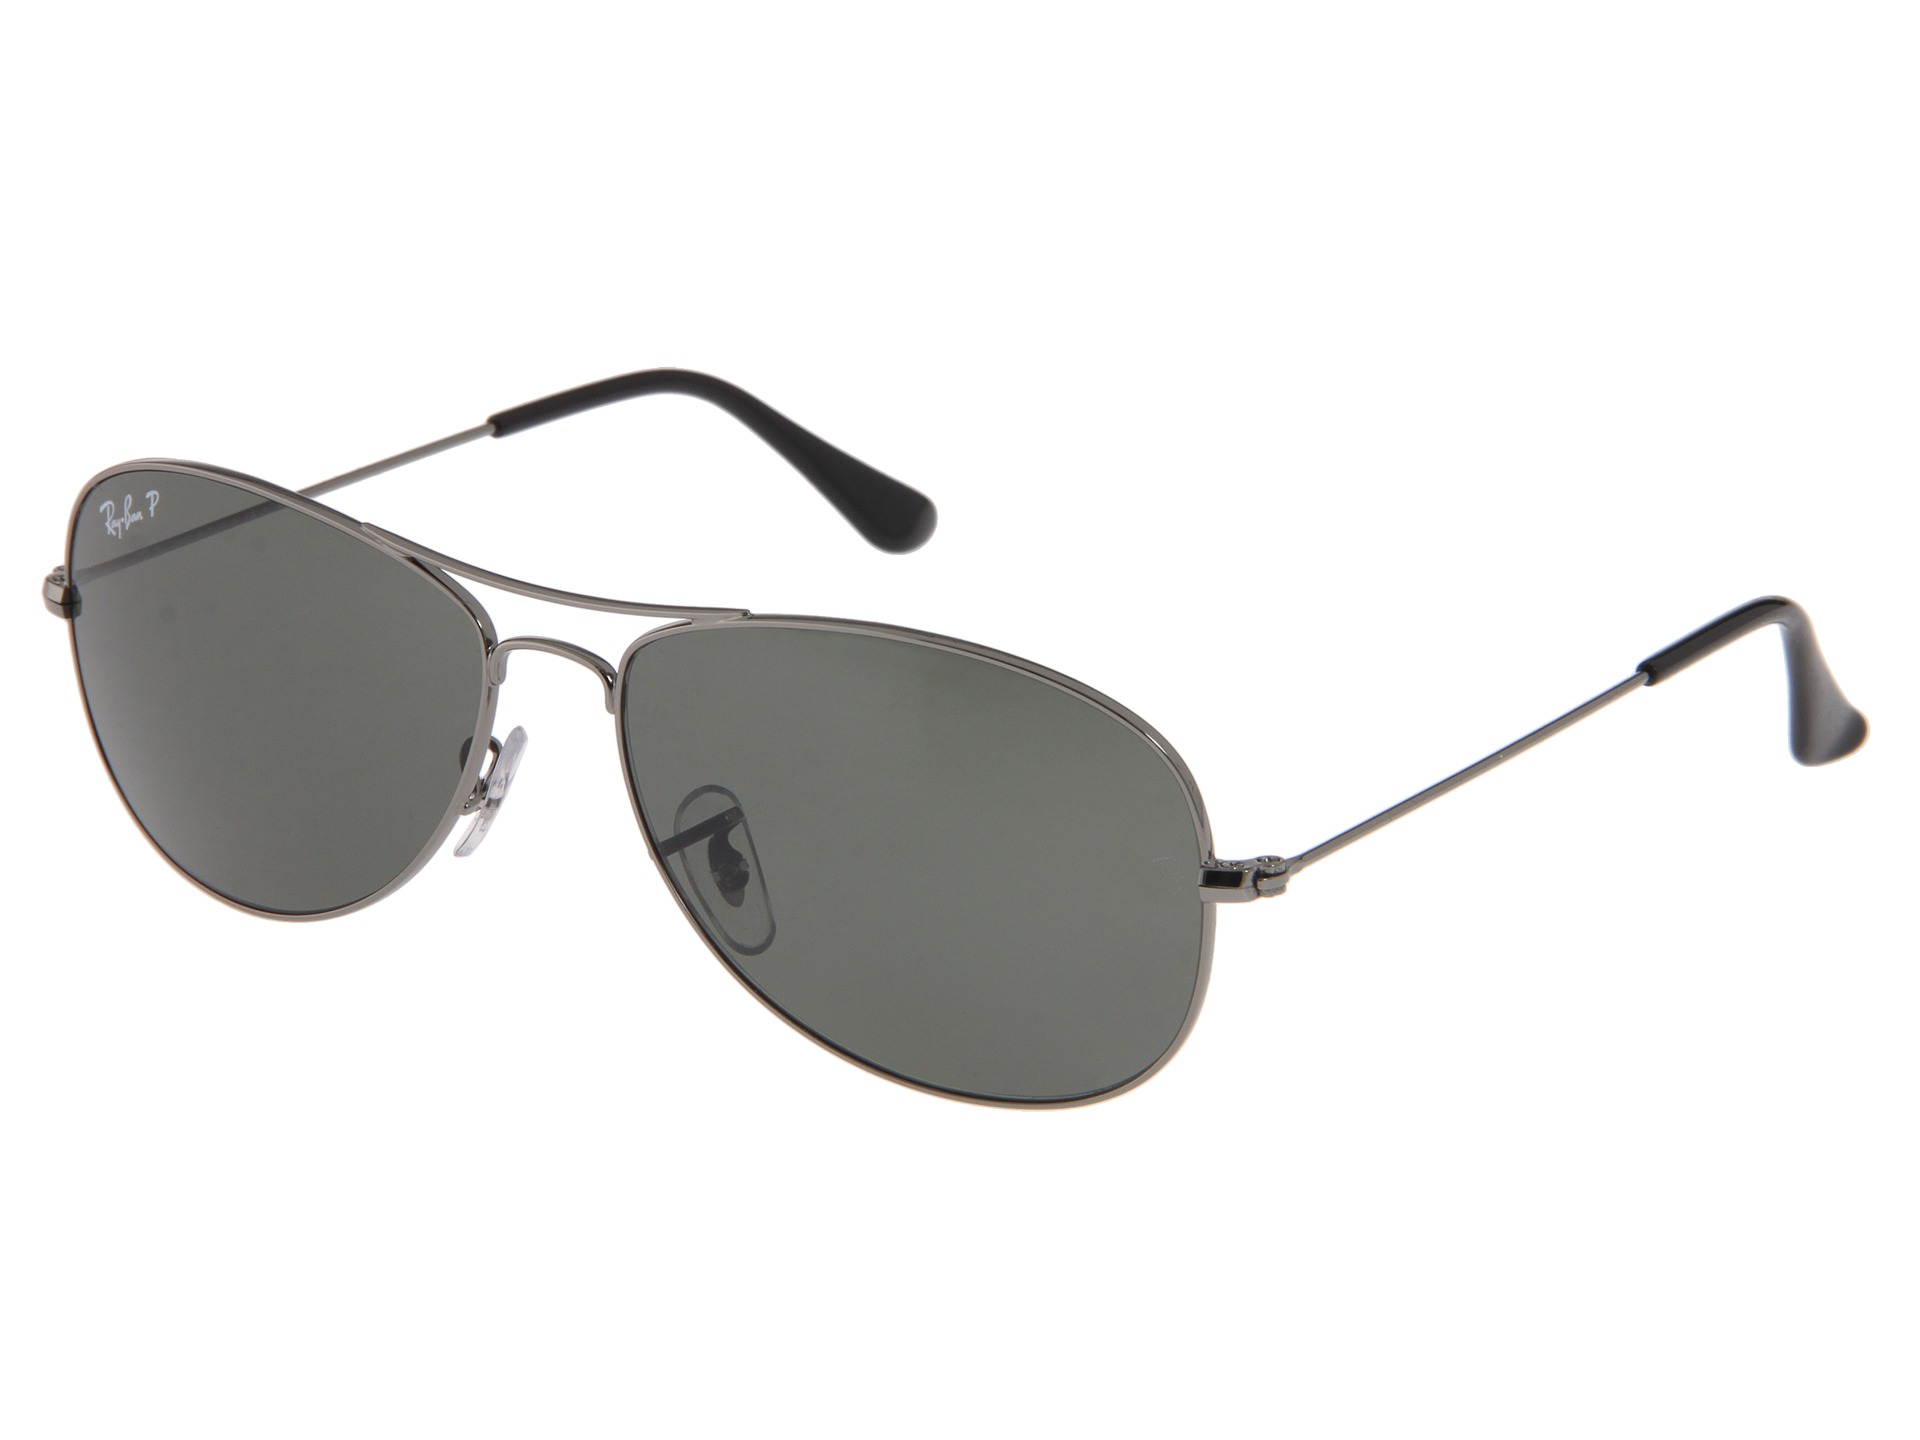 ray ban cockpit sunglasses on sale louisiana bucket brigade. Black Bedroom Furniture Sets. Home Design Ideas